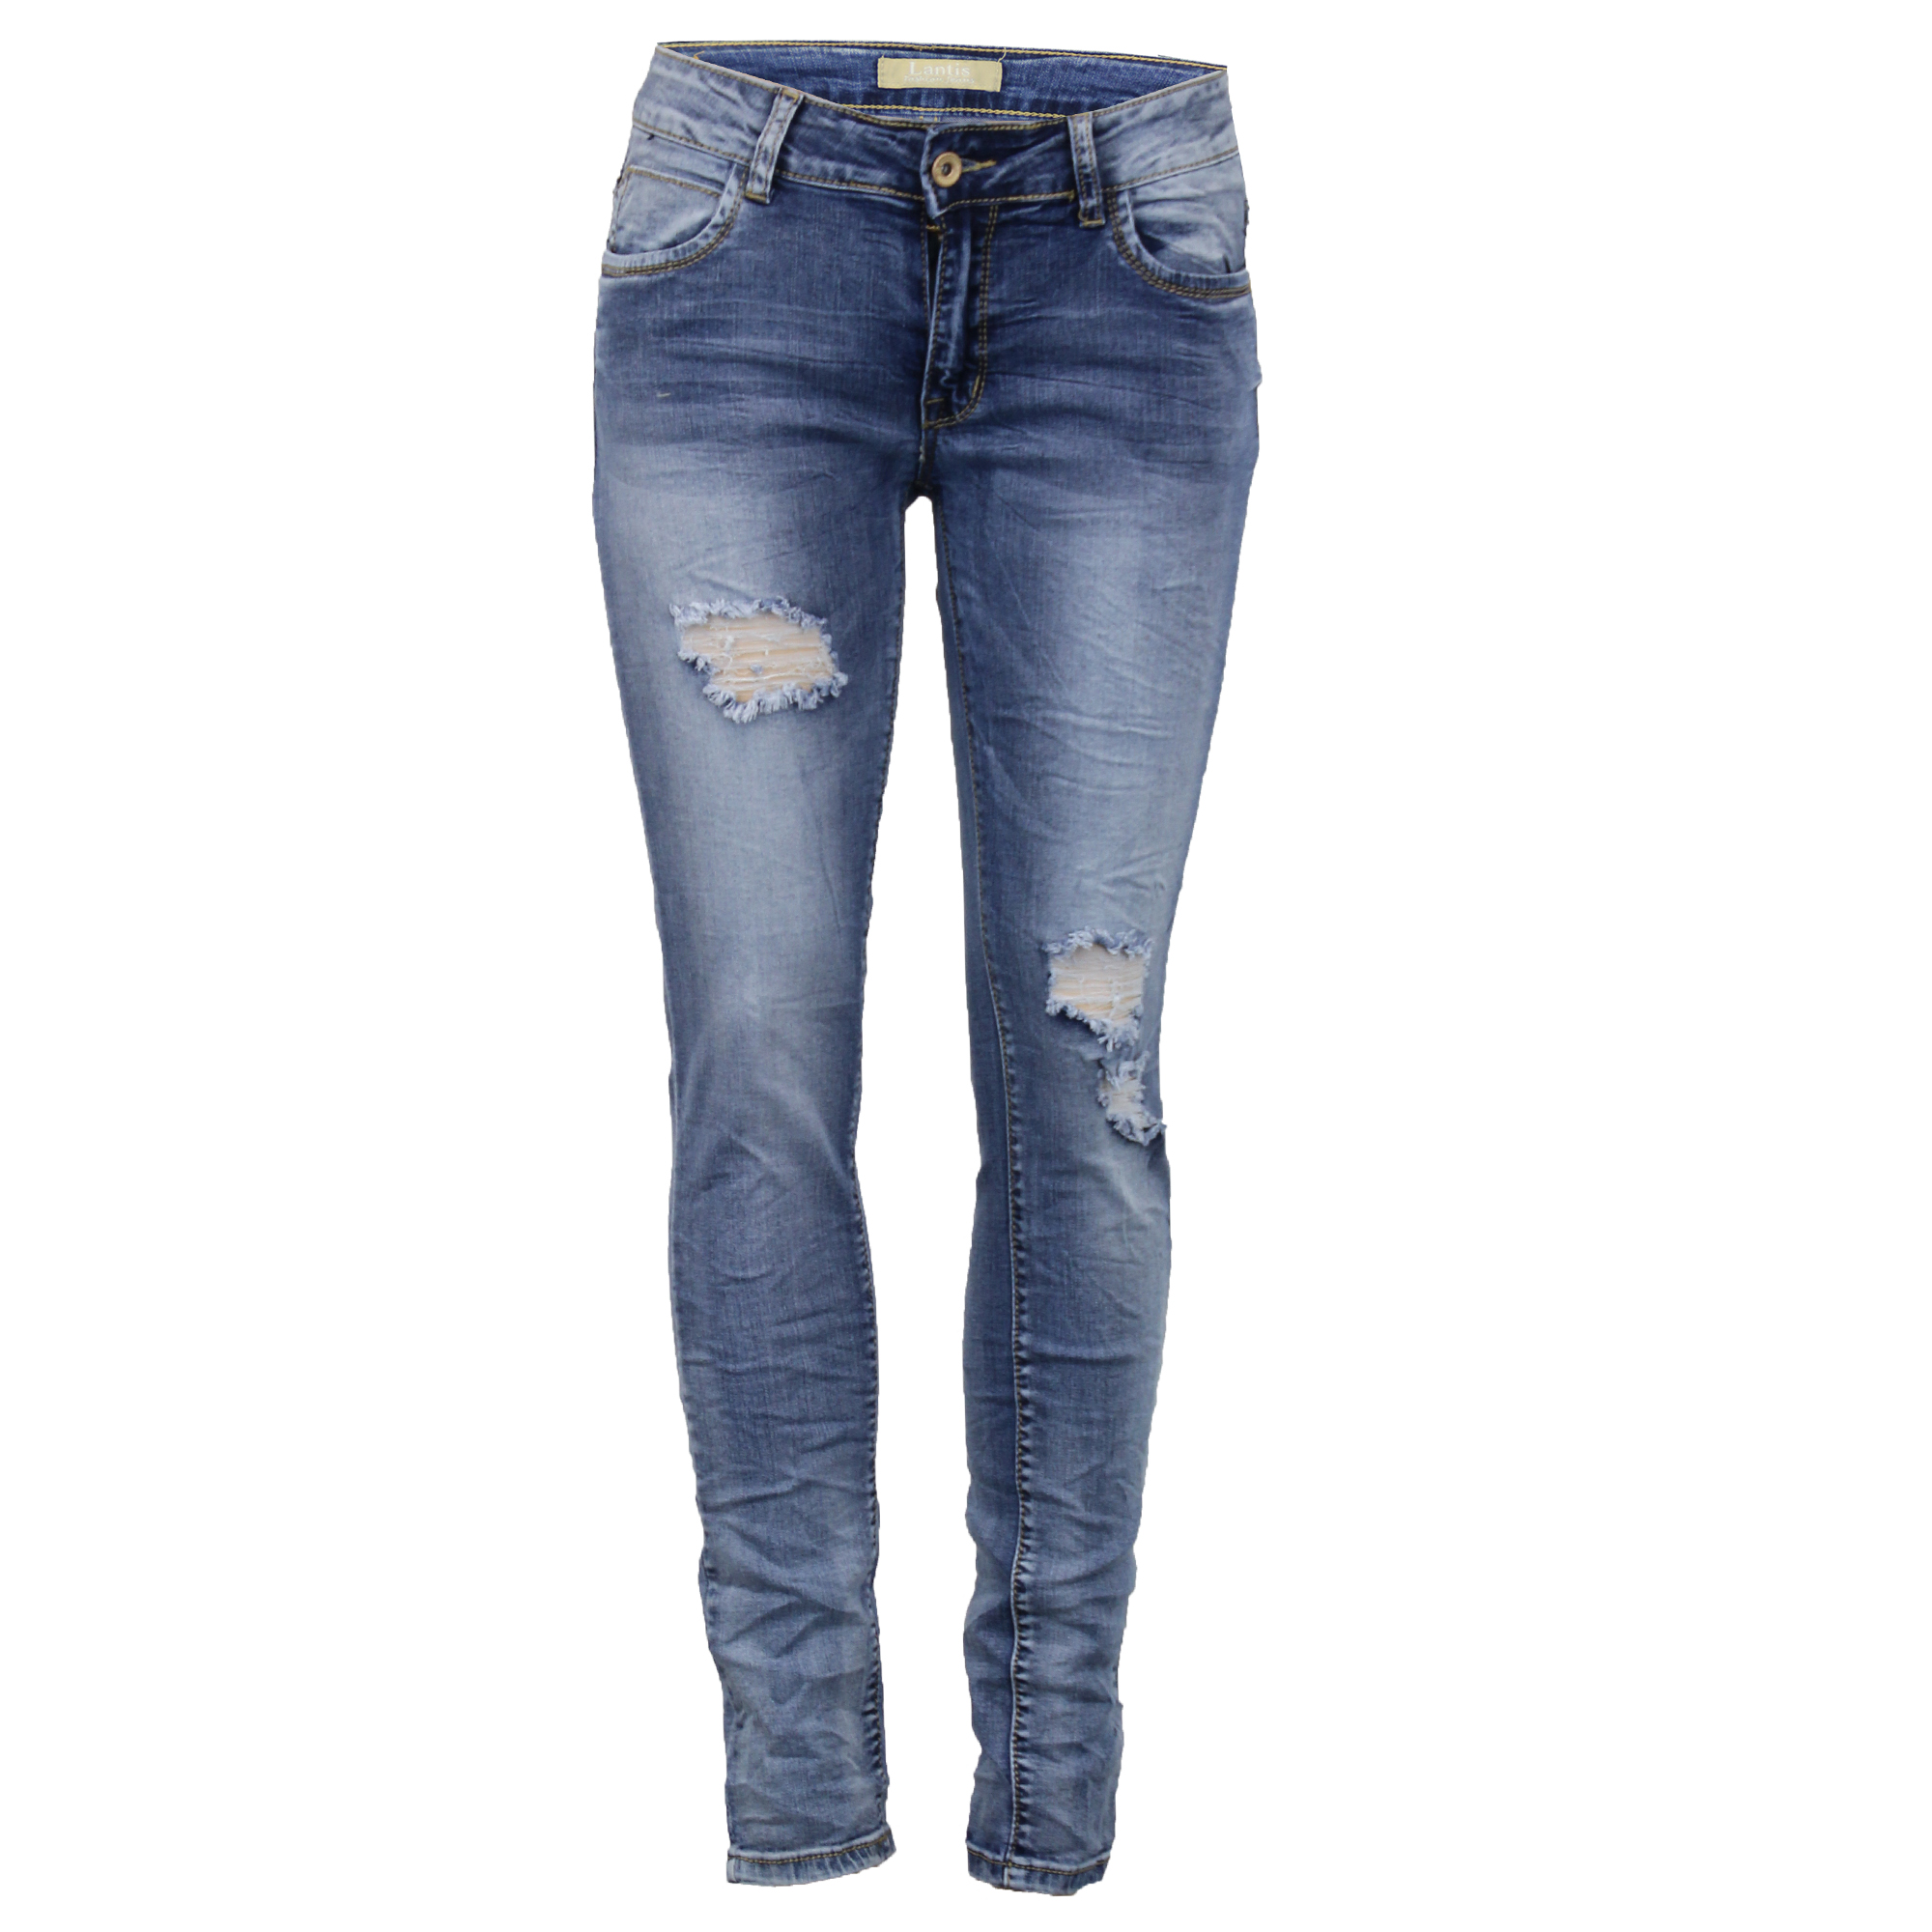 denim Whether you want the vintage feel of well-worn indigo or sleek black jeans that work from day to night, there's a style for you. The range has been expertly designed and crafted for a full range of fits from skin-tight skinnies to relaxed, boyfriend cuts.